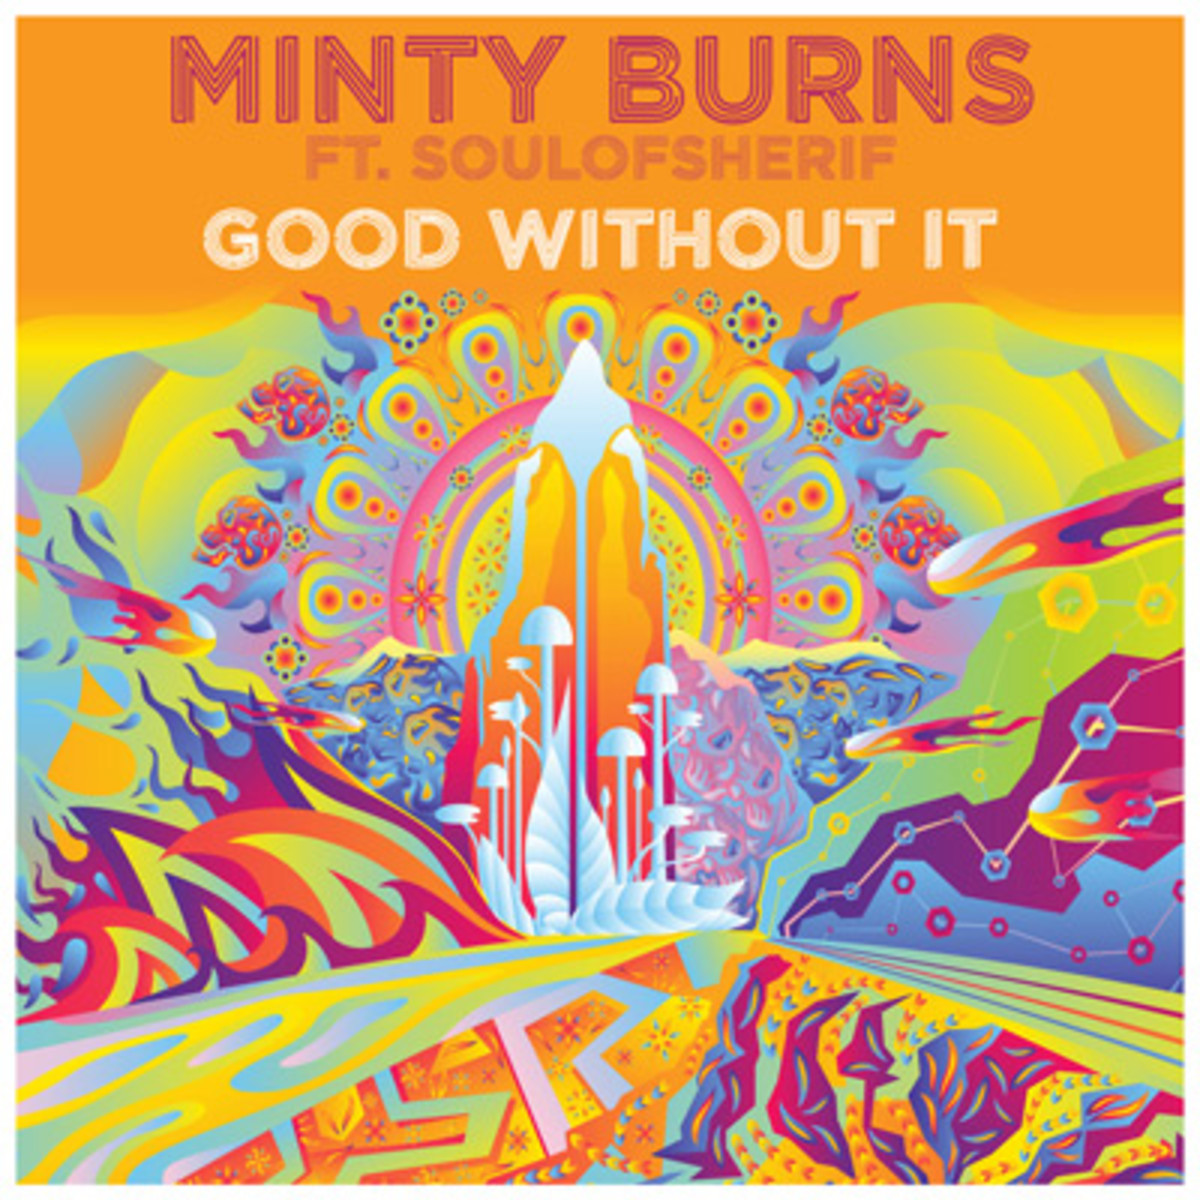 mintyburns-goodwithoutit.jpg